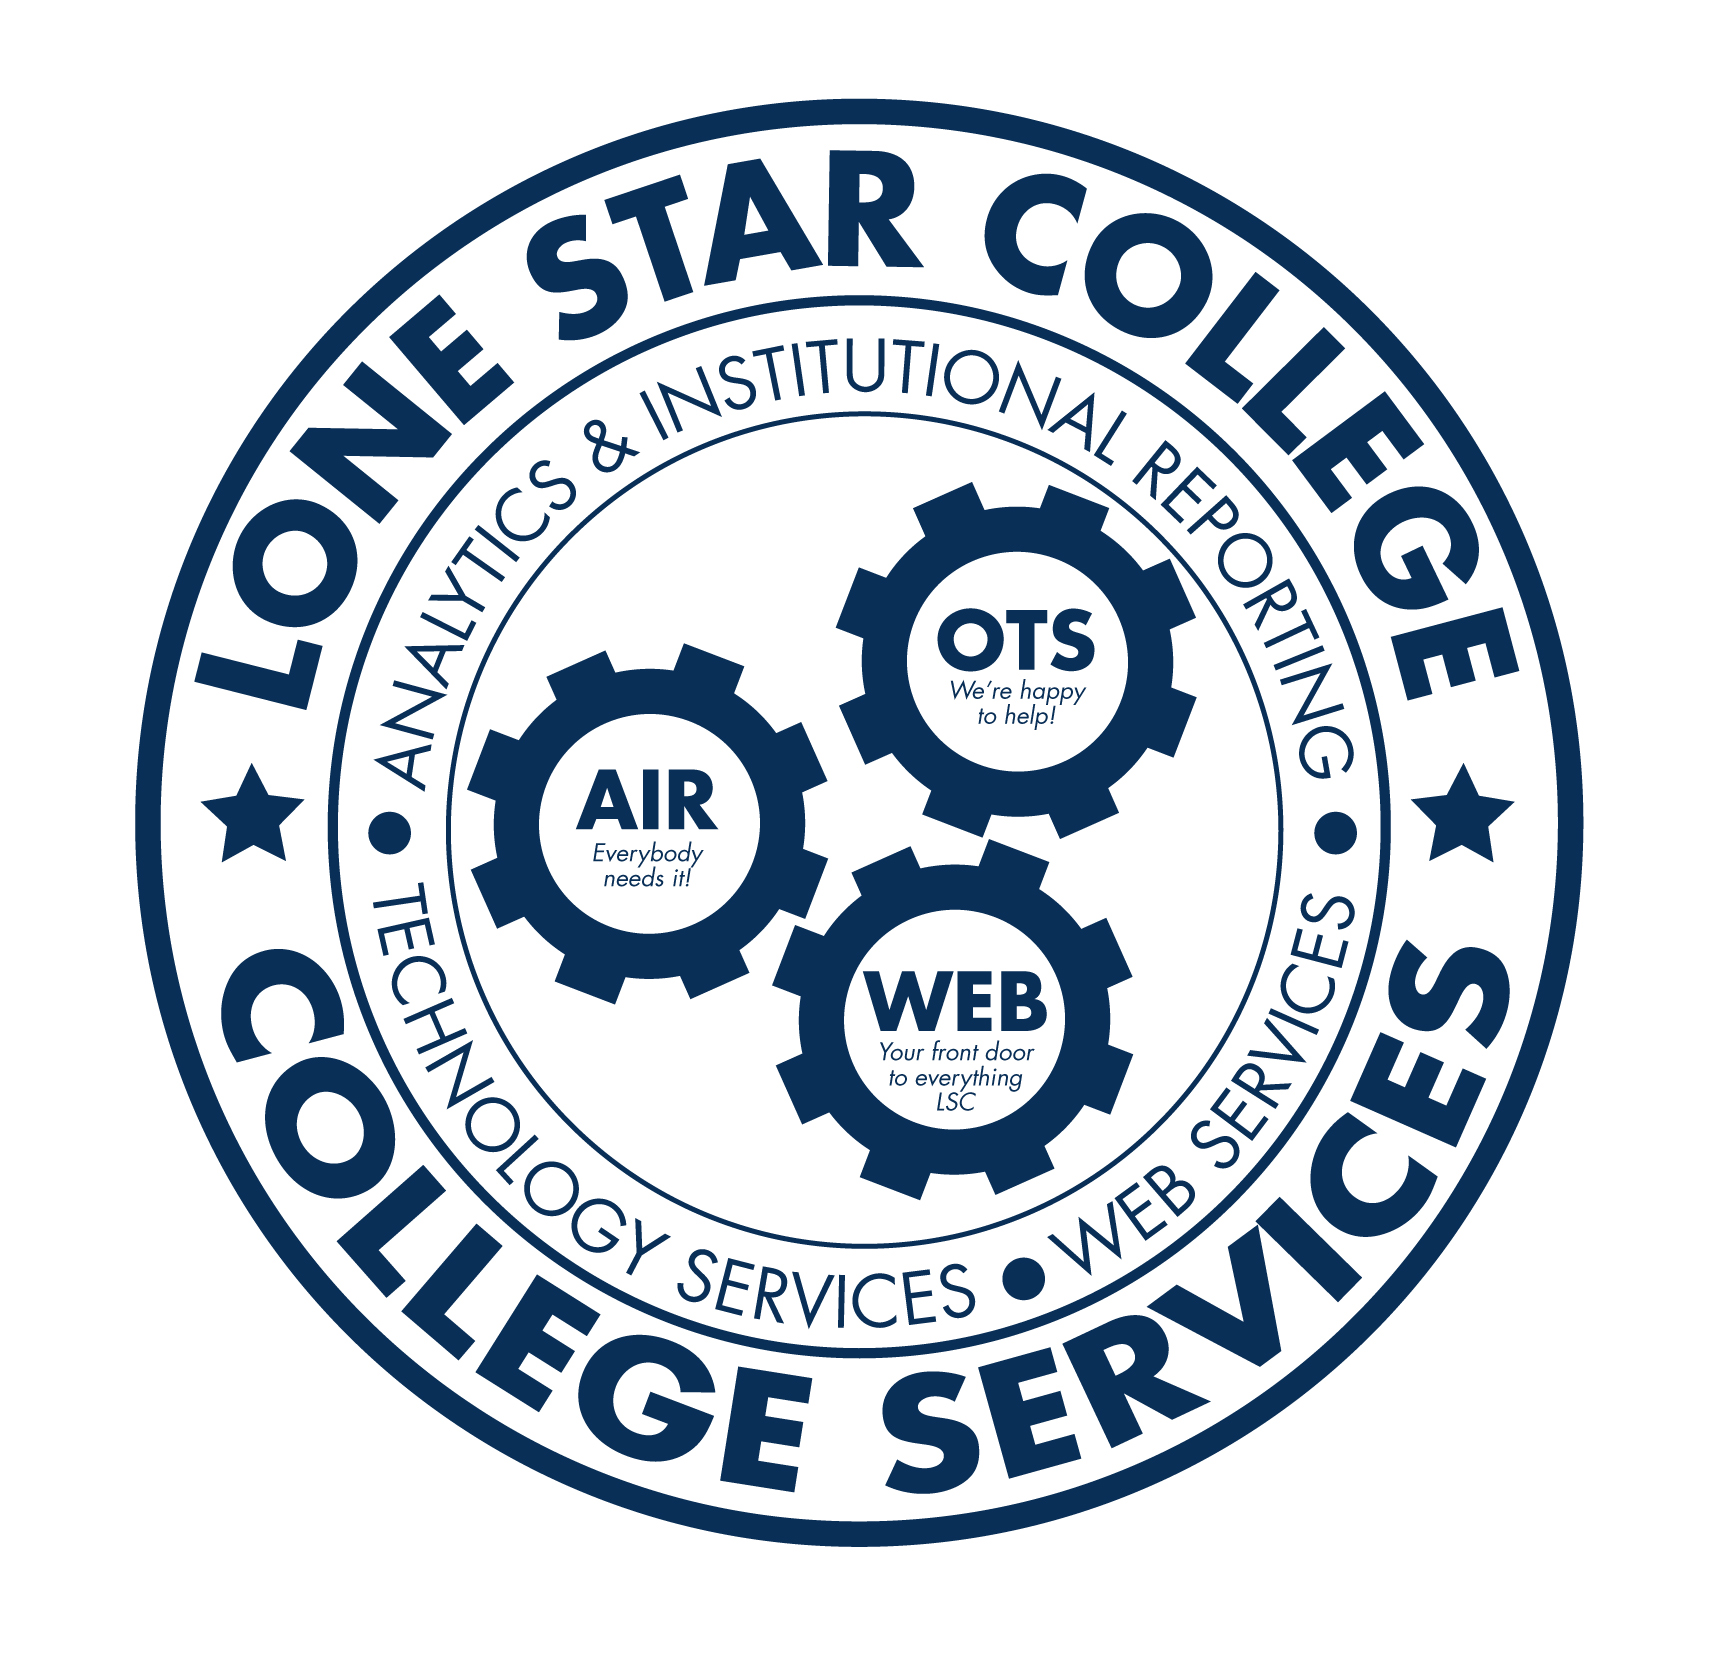 Office of College Services - AIR, Technology Services, and Web Services